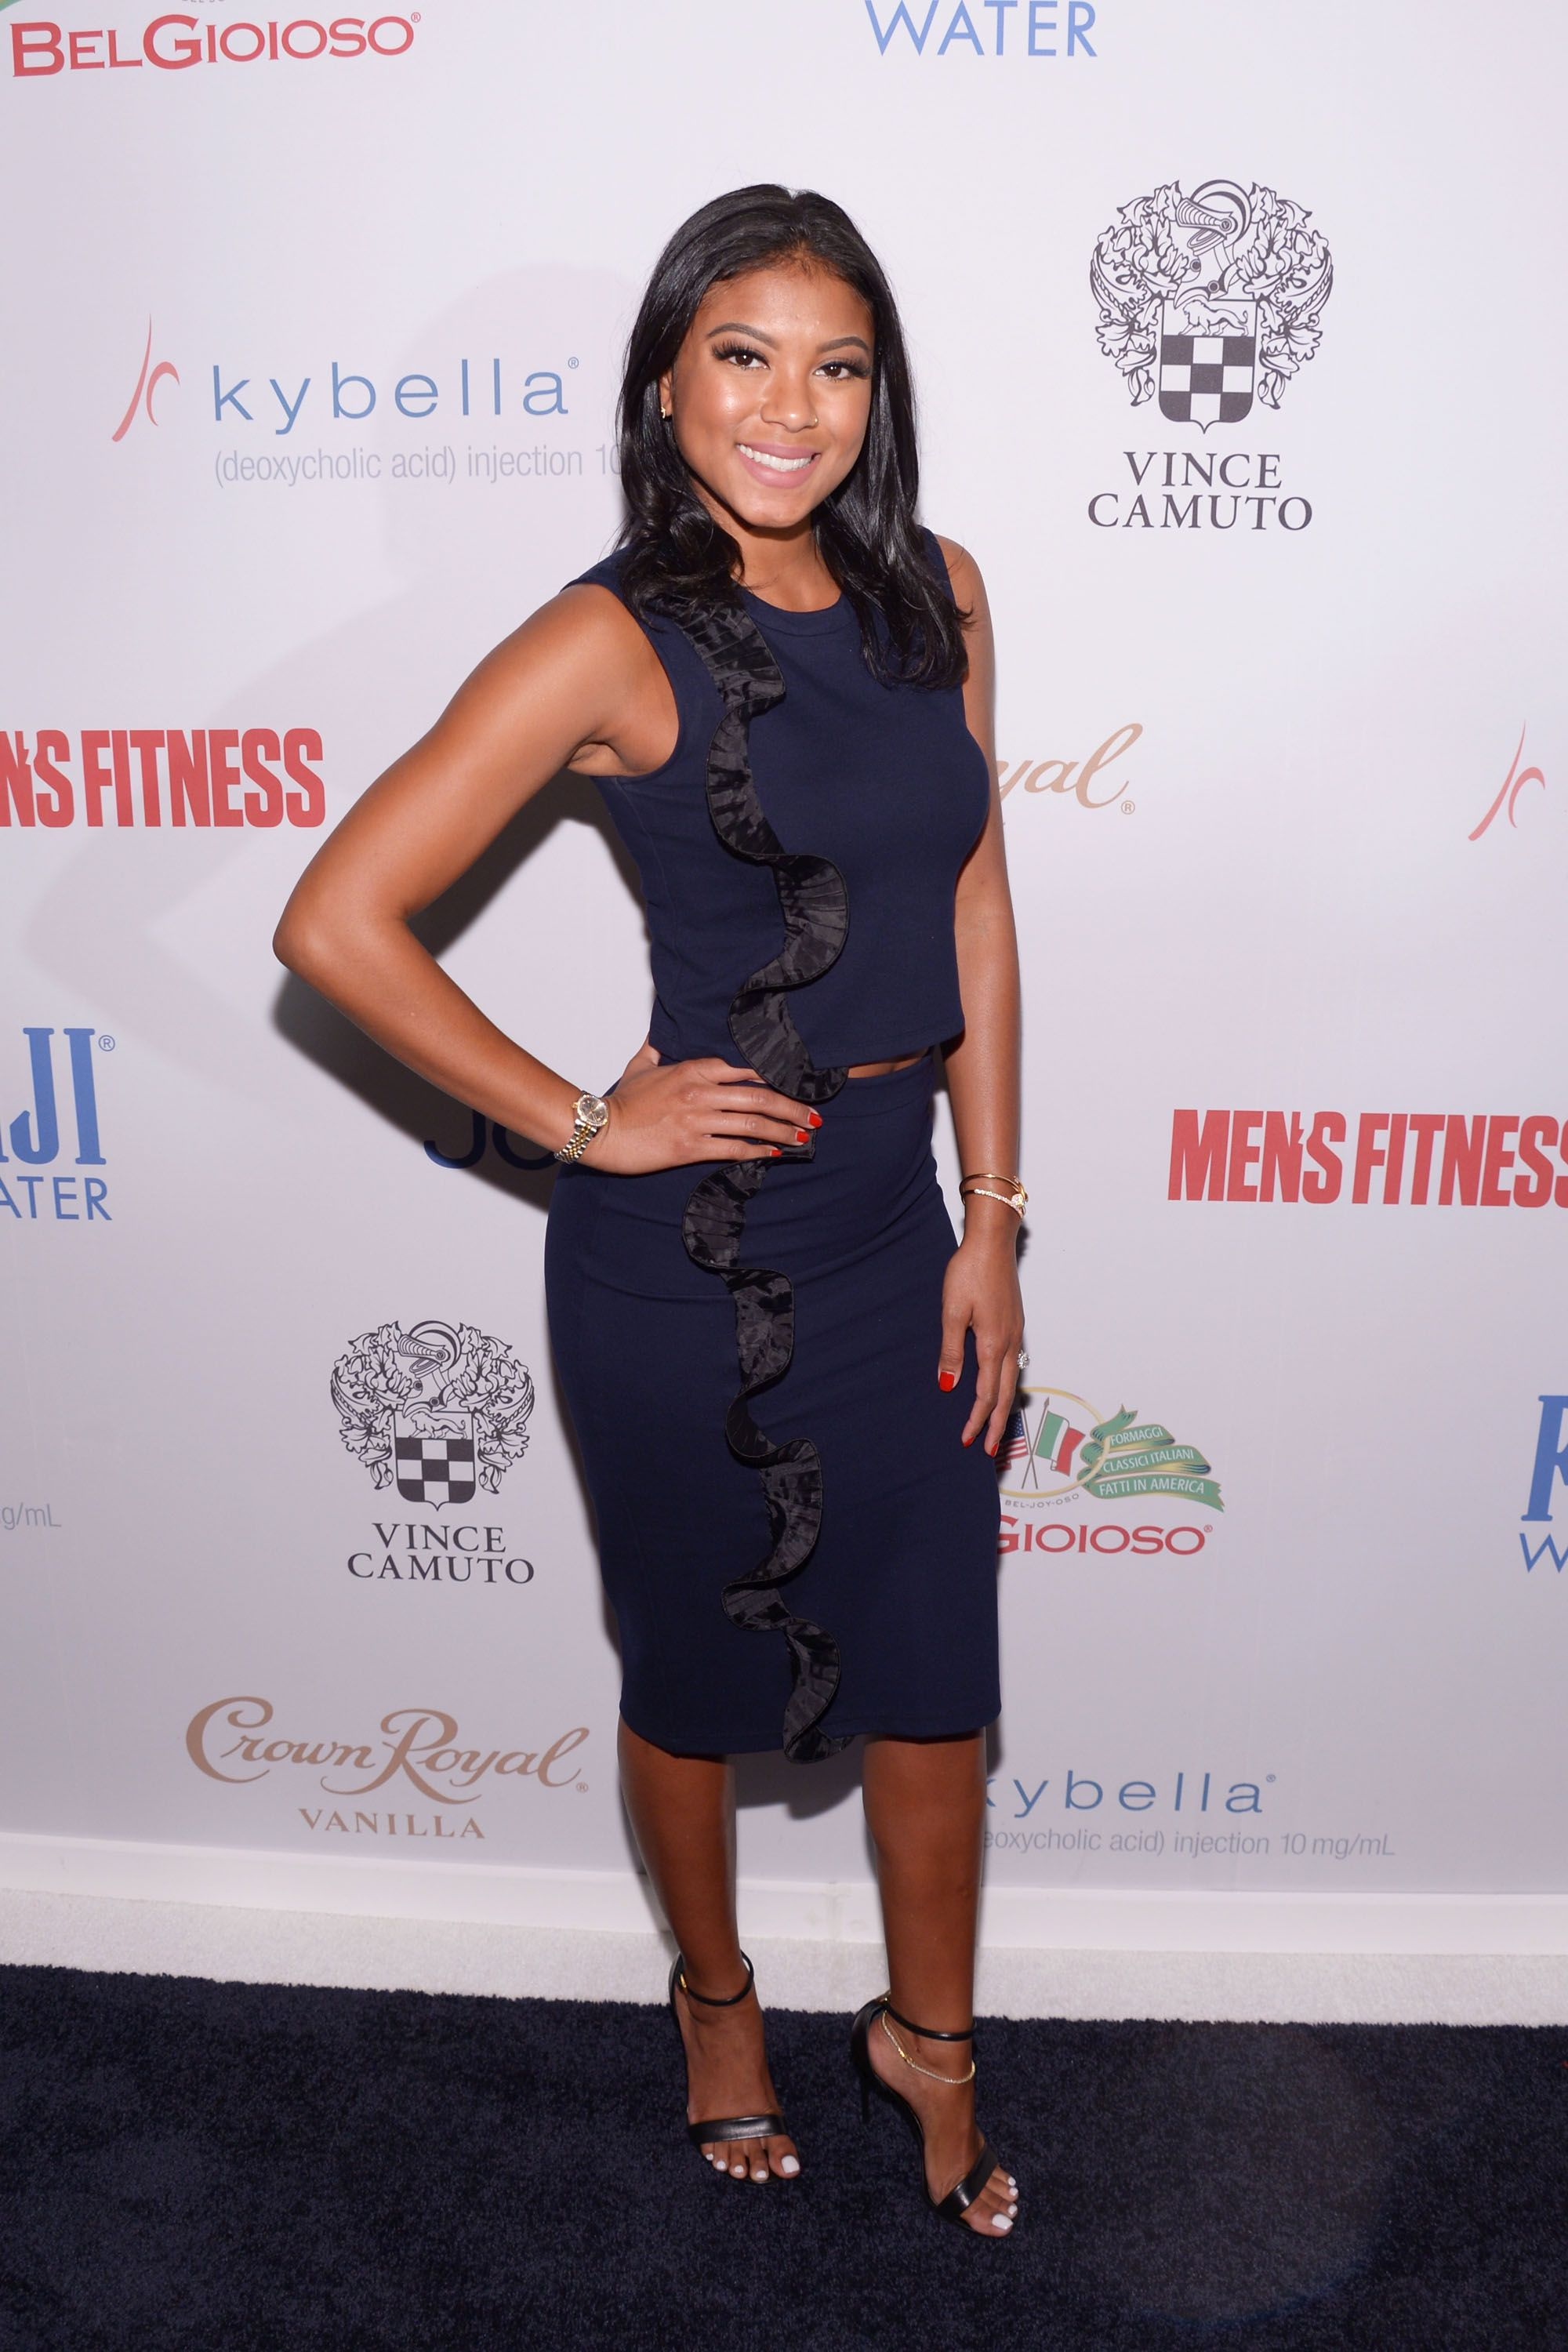 Eniko Parrish-Hart during the Men's Fitness Game Changers Celebration at Sunset Tower Hotel on October 10, 2016 in West Hollywood, California.   Source: Getty Images